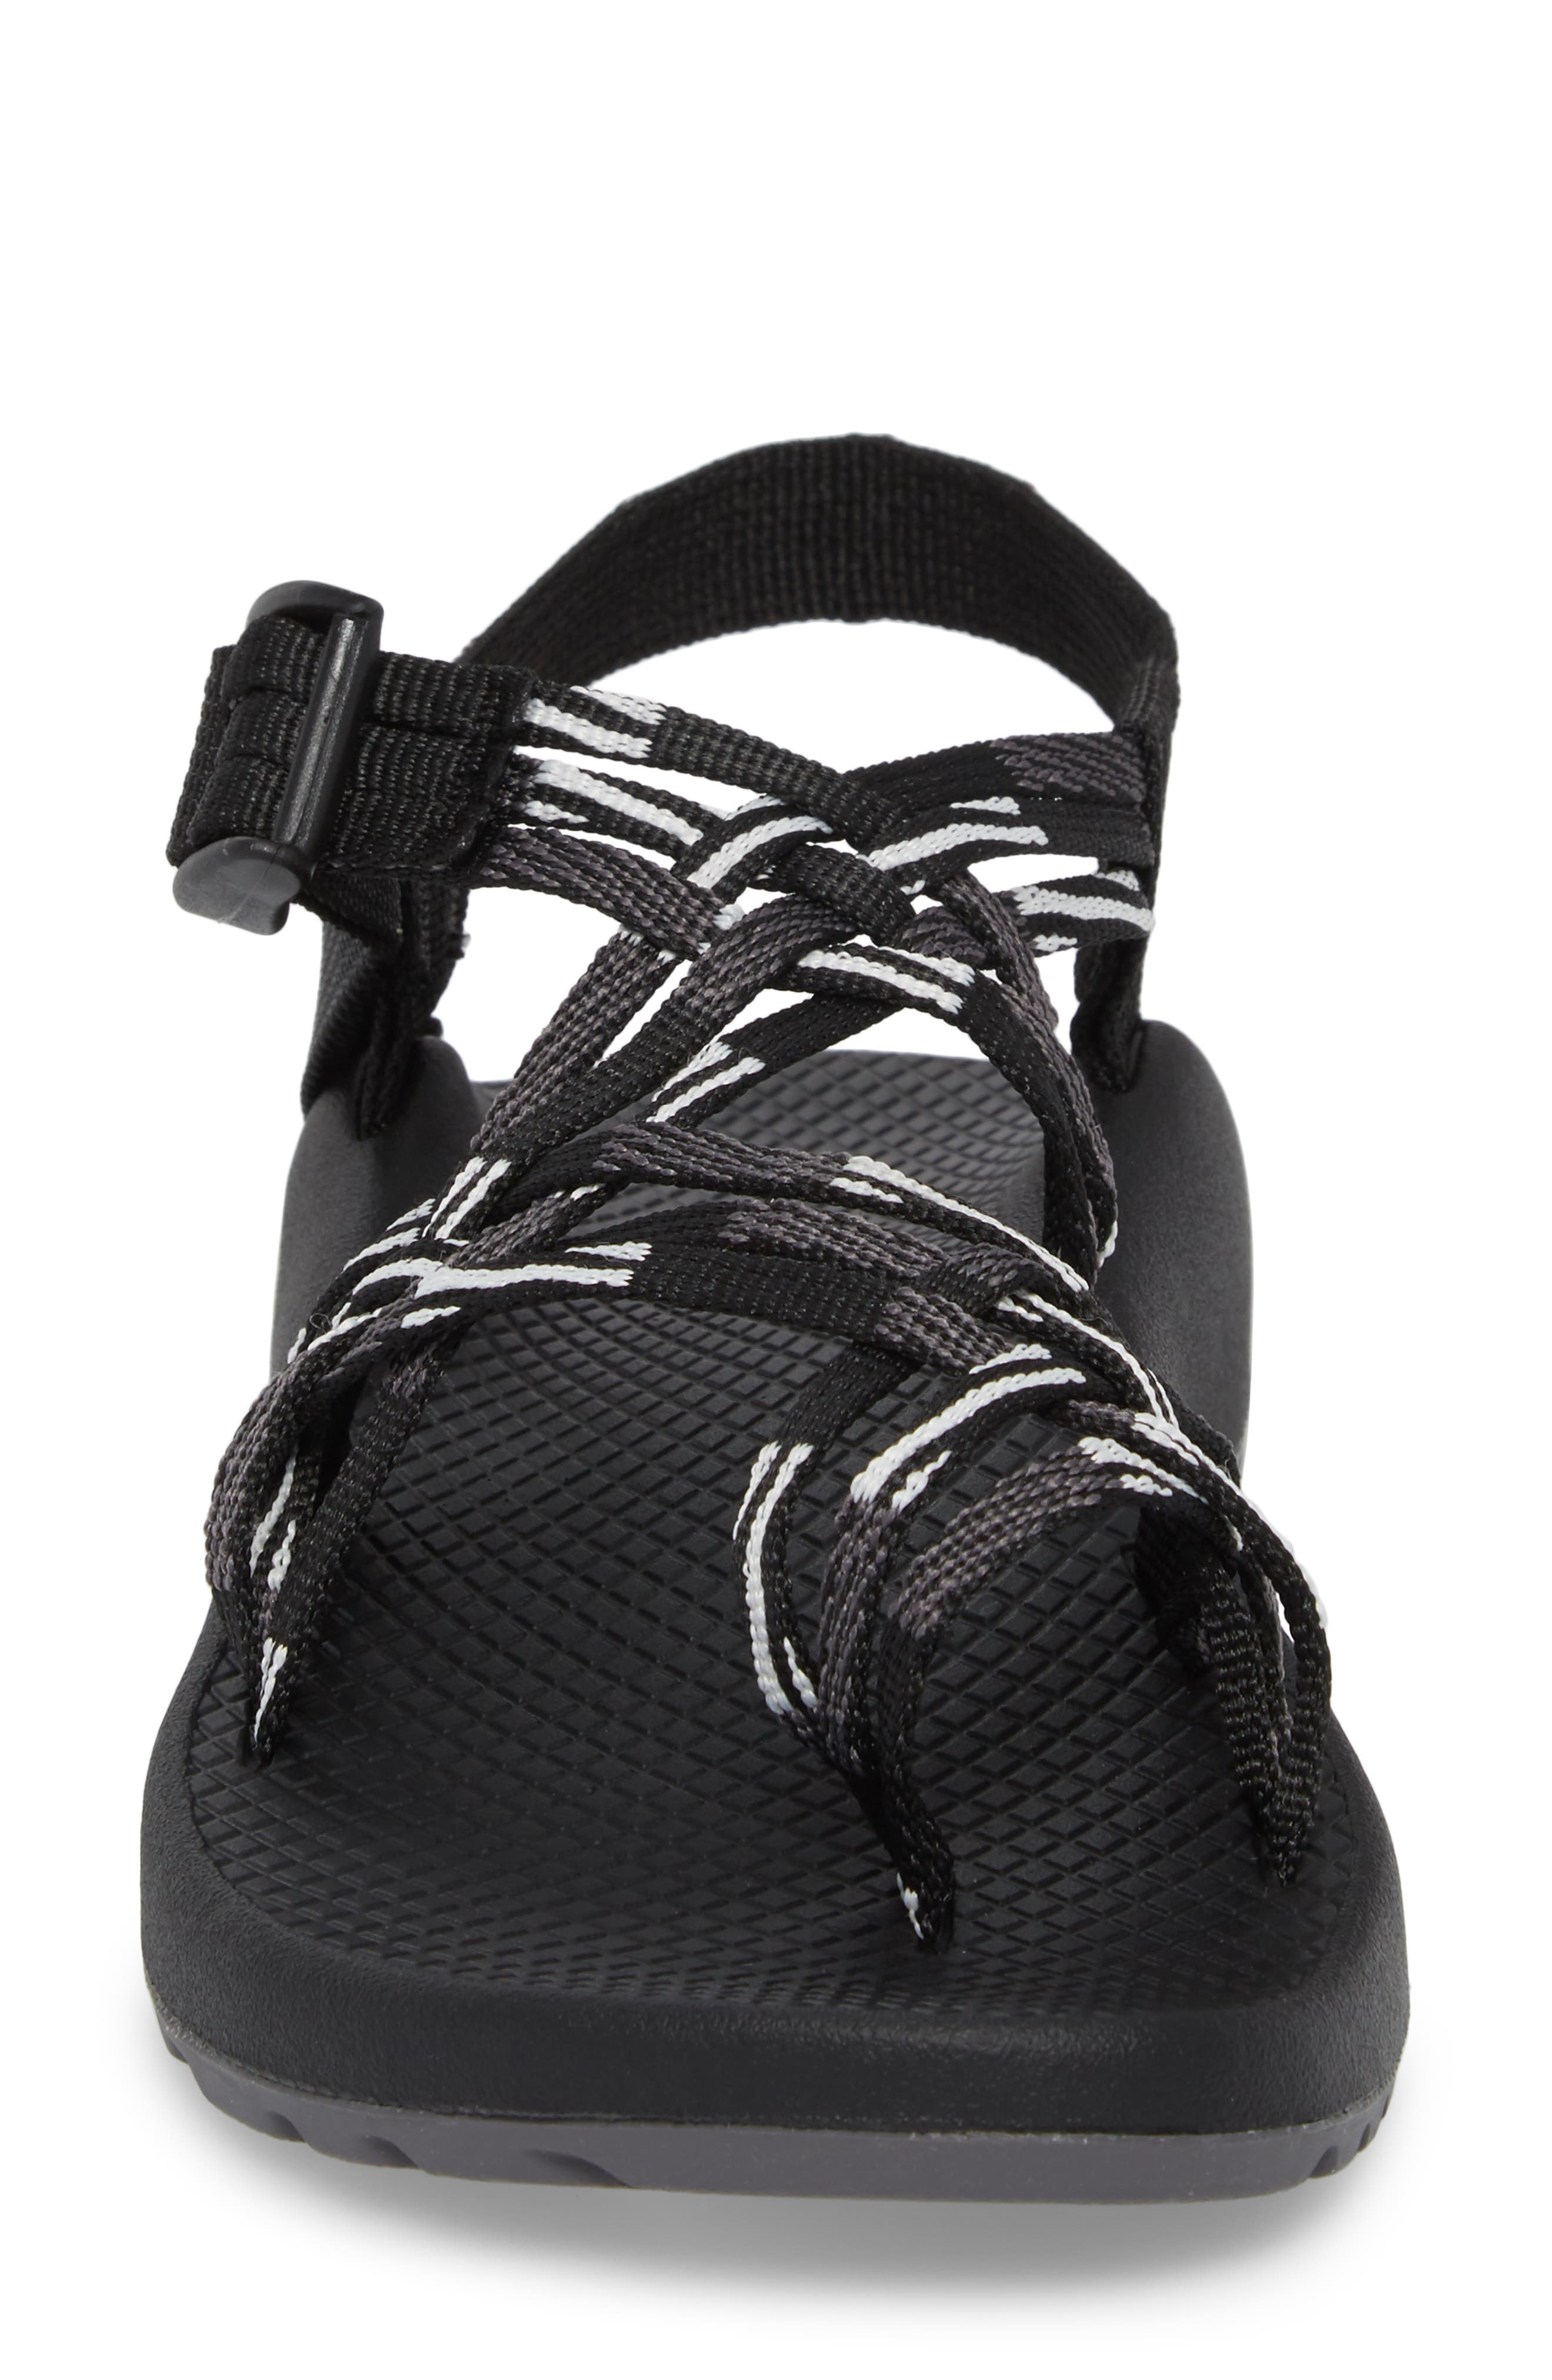 ZX/3<sup>®</sup> Classic Sandal,                             Alternate thumbnail 4, color,                             SCATTER BLACK / WHITE